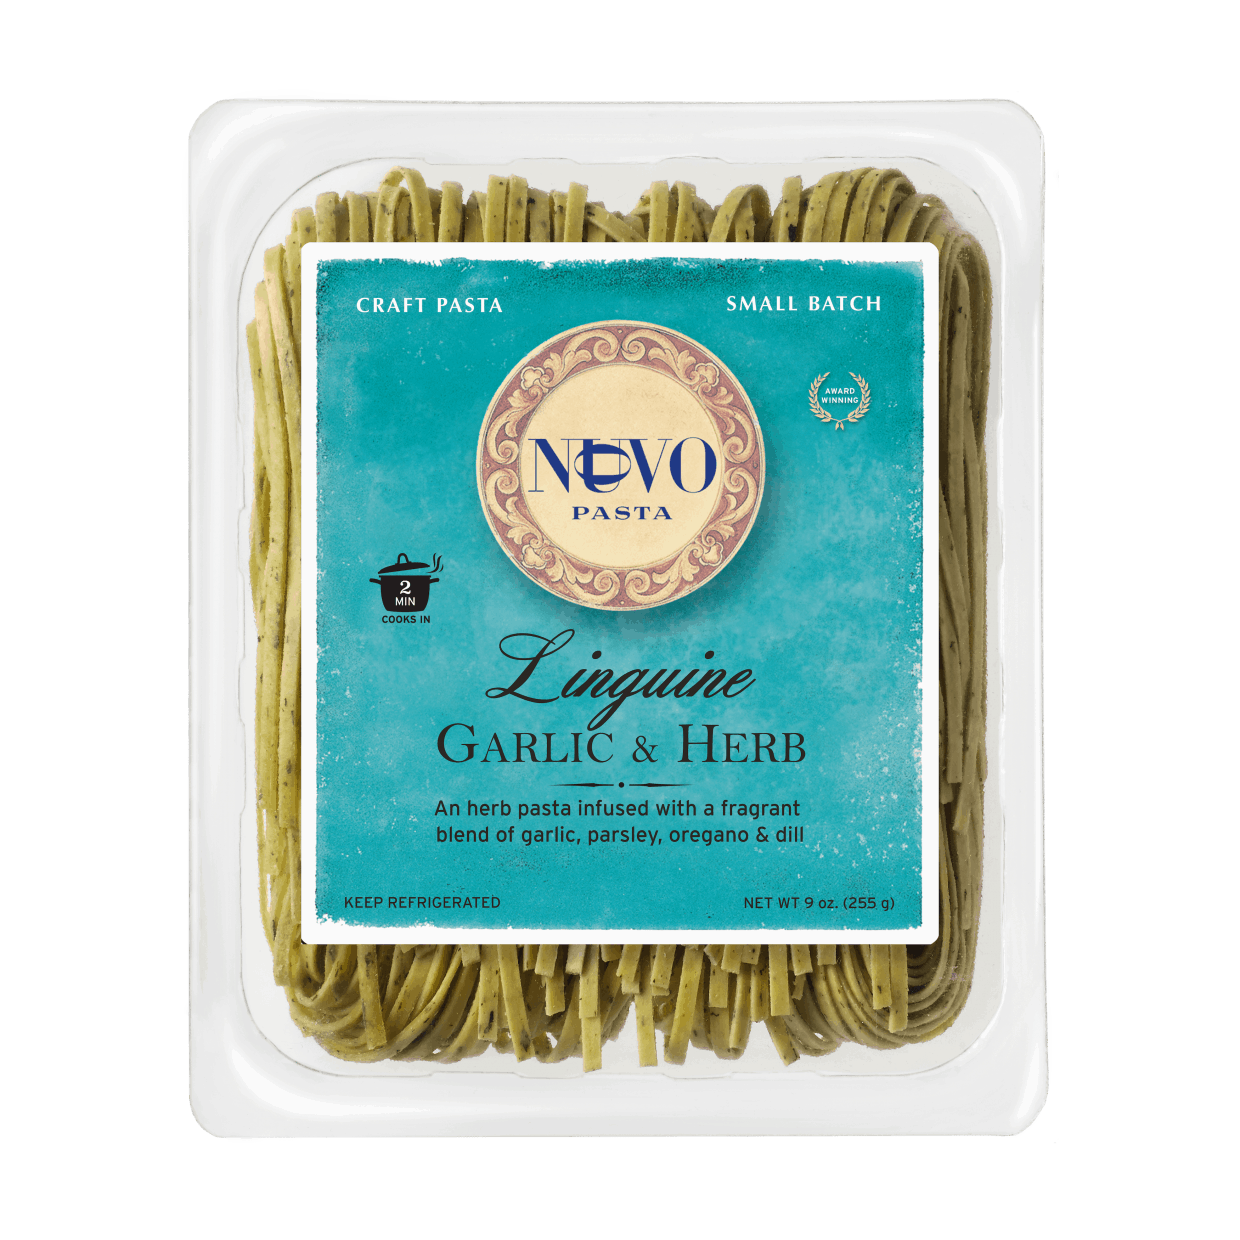 Garlic & Herb Linguine